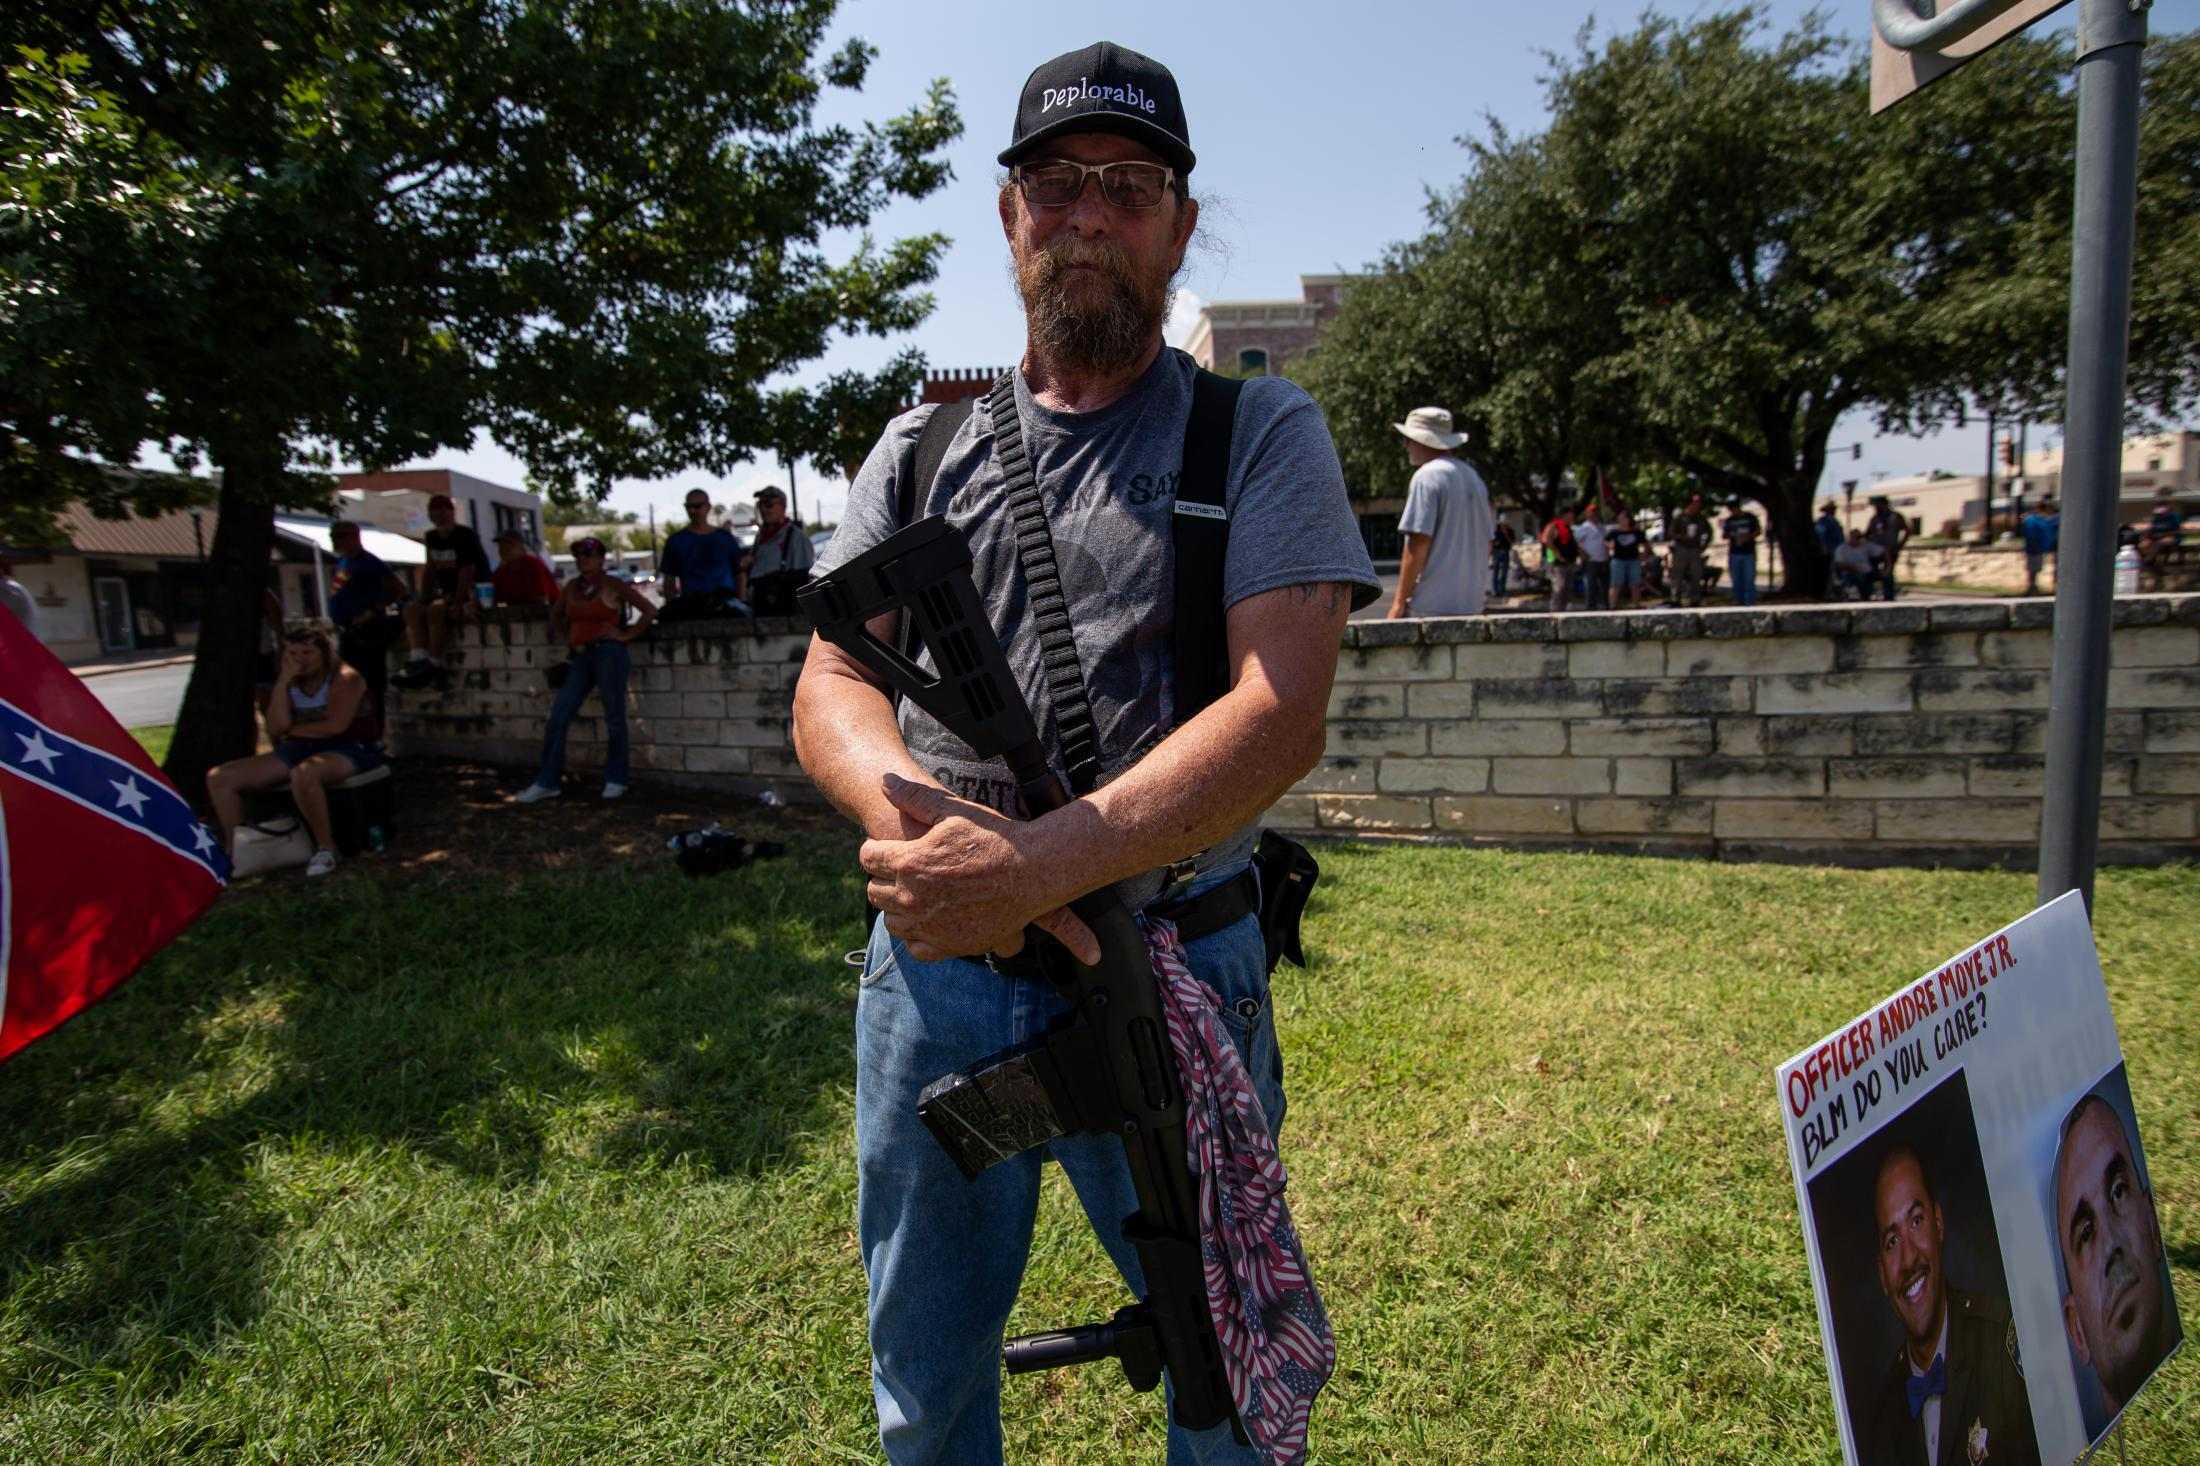 George, 66, from Mineral Wells, Texas, stands on the side of the Weatherford Confederate monuments supporters, armed with a rifle. He brought his weapon to protect himself as the demonstrators have brought their guns.